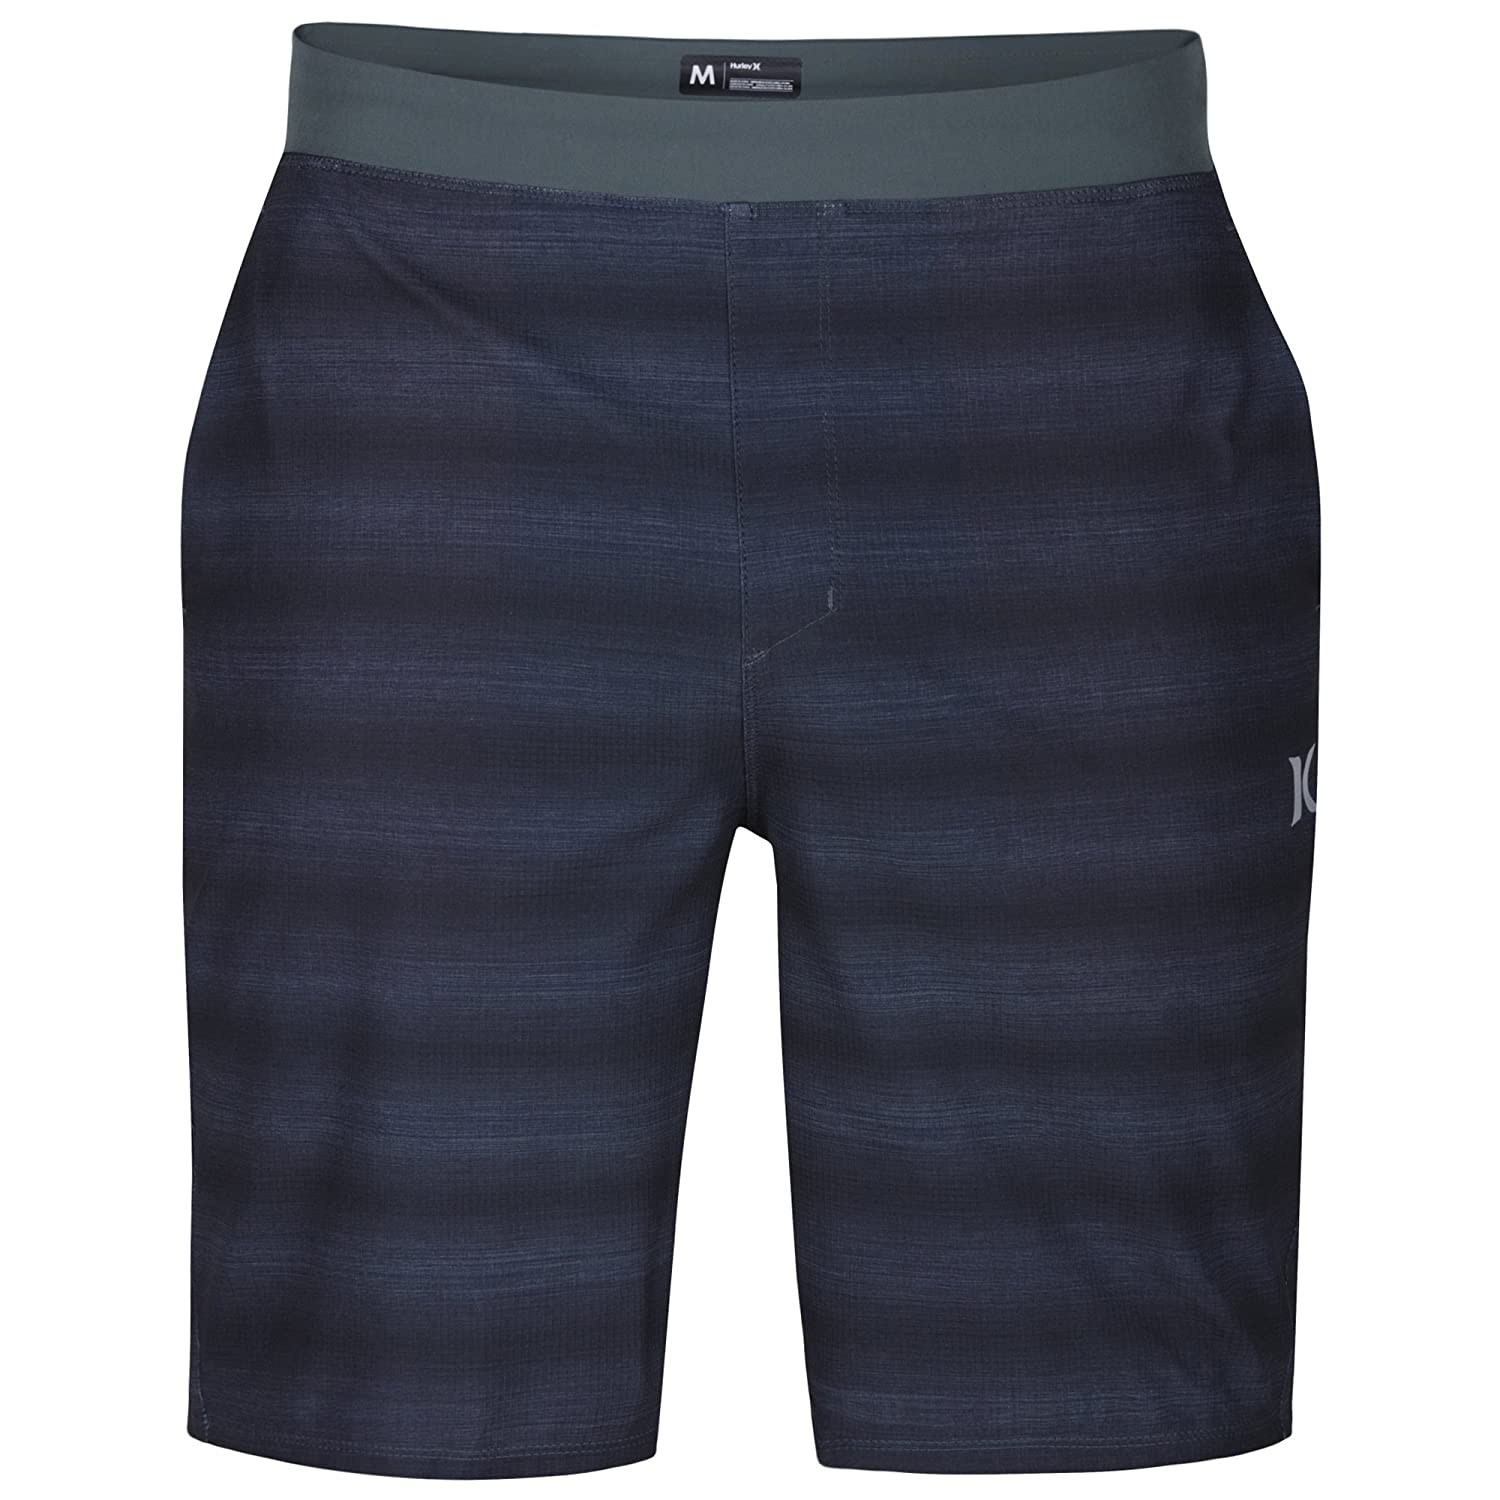 Hurley New Men's Alpha Trainer Solid Short Polyester Elastane Black